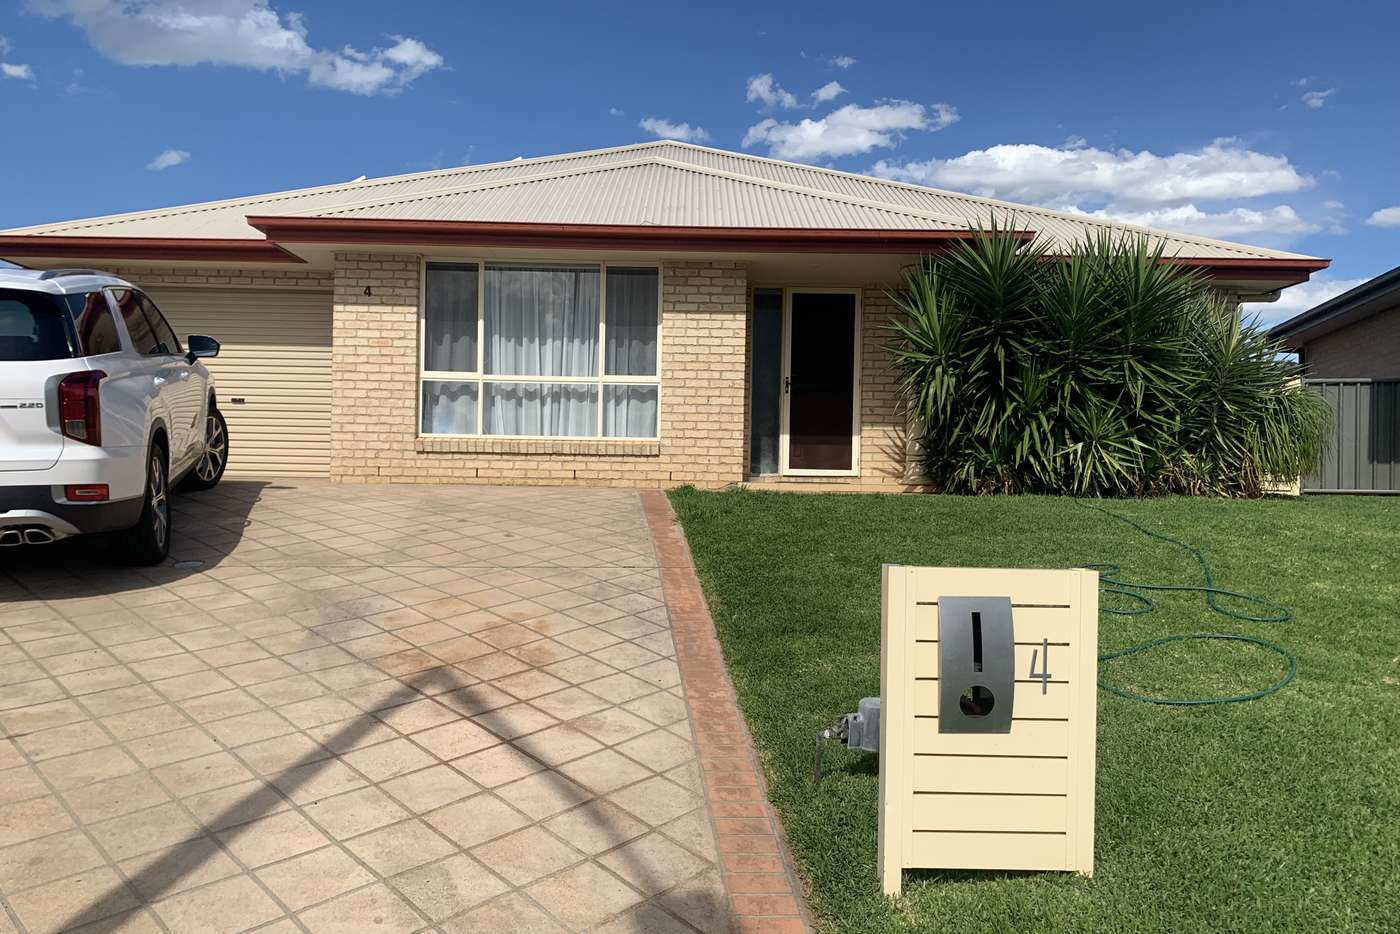 Main view of Homely house listing, 4 Mitchell Pl, Gunnedah NSW 2380